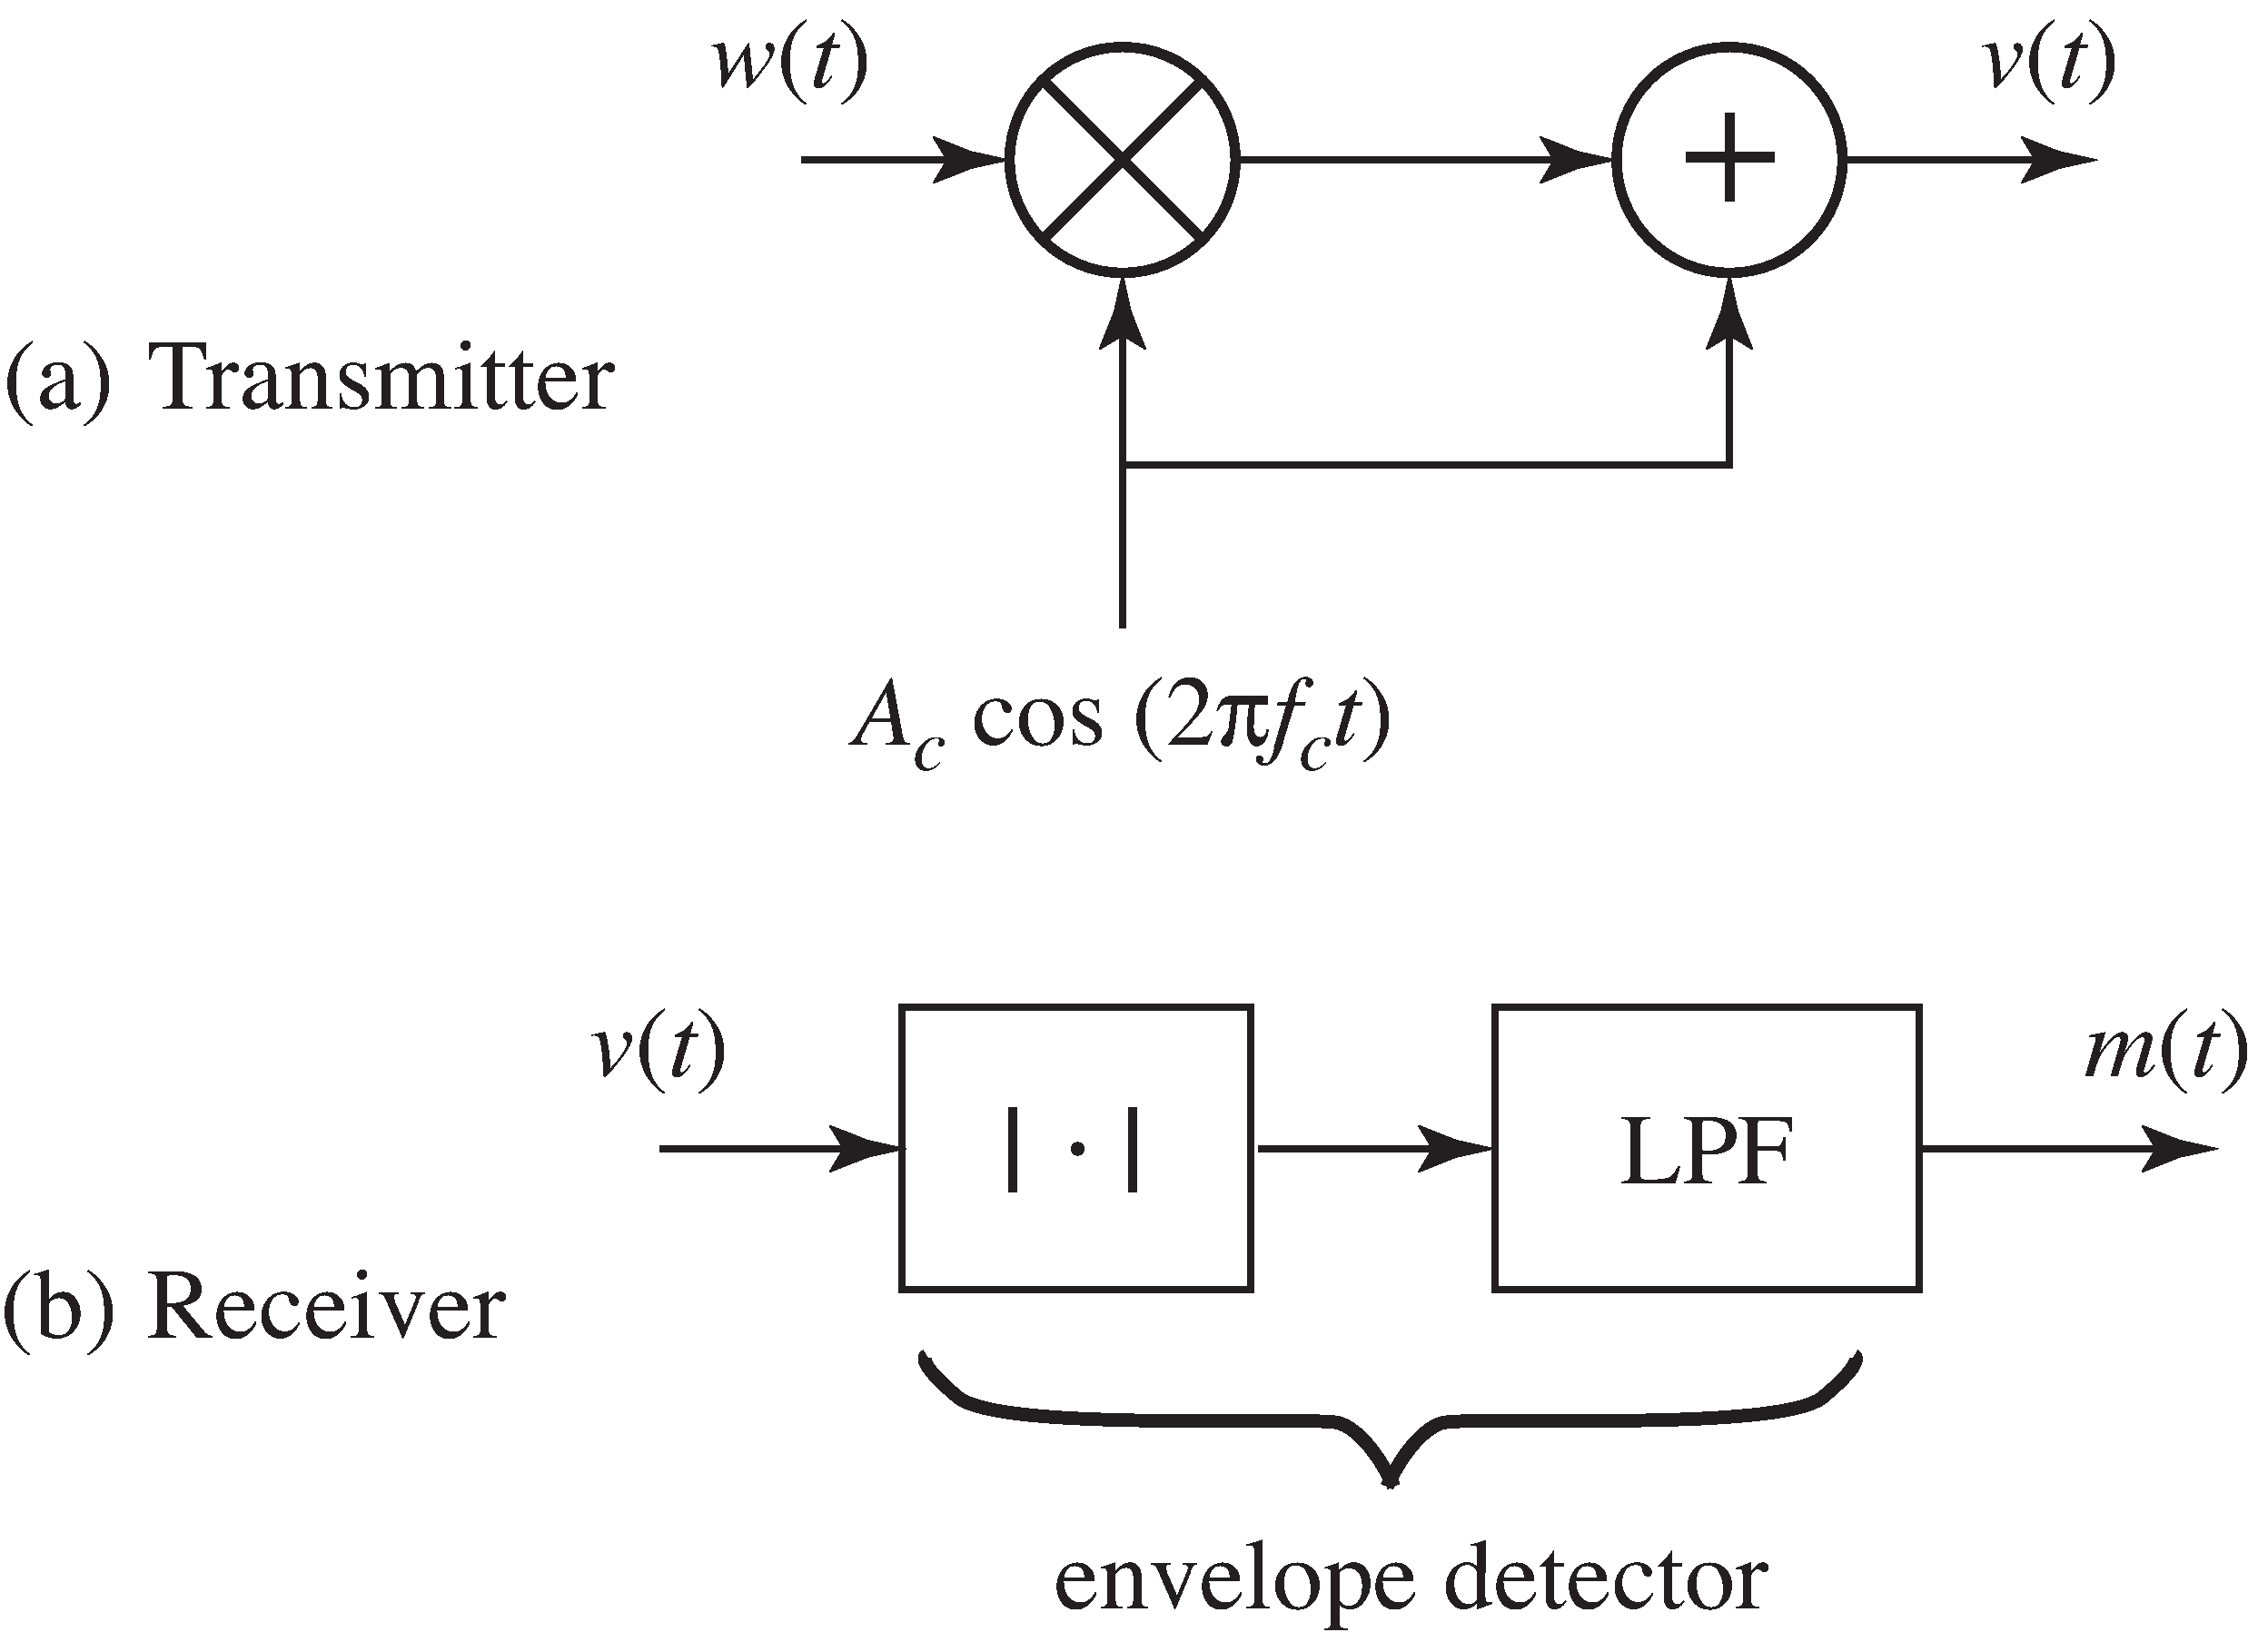 Analog Demodulation An Envelope Detector The Block Diagram Of Is A Communications System Using Amplitude Modulation With Large Carrier In Transmitter